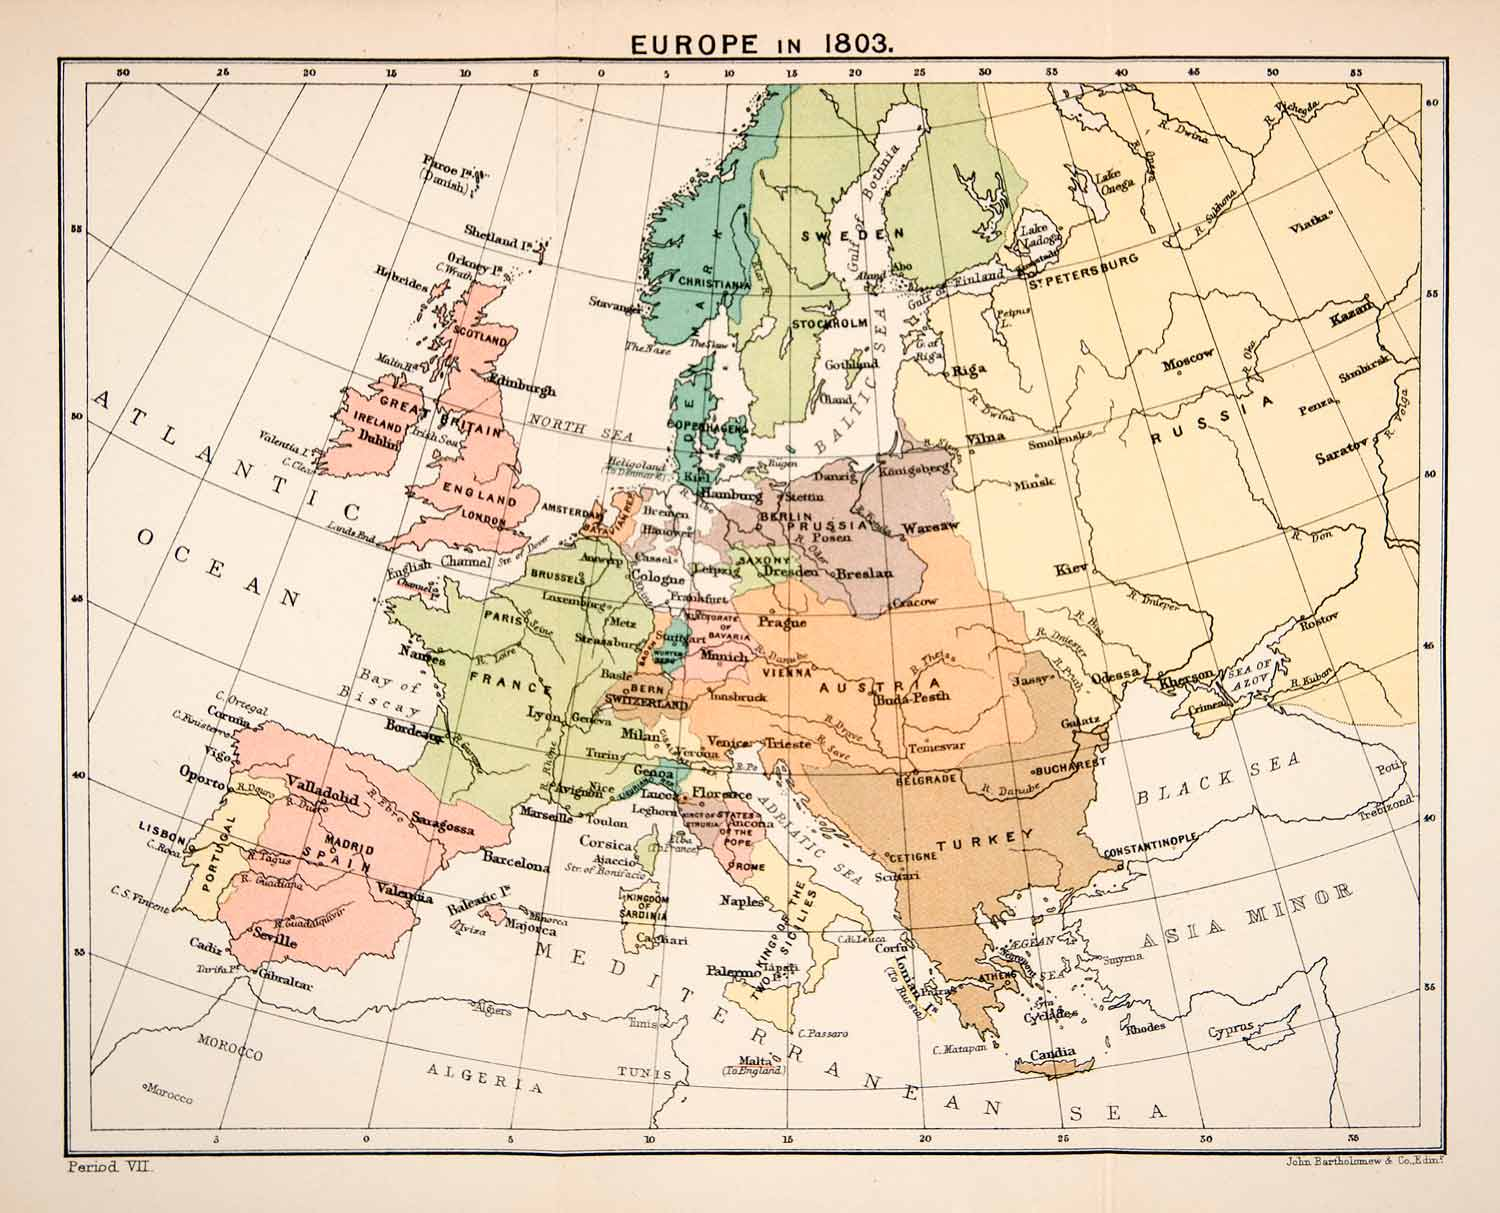 Map Of France To Print.1897 Print Map Europe 1803 Great Britain France Prussia Kingdom Two Xep1